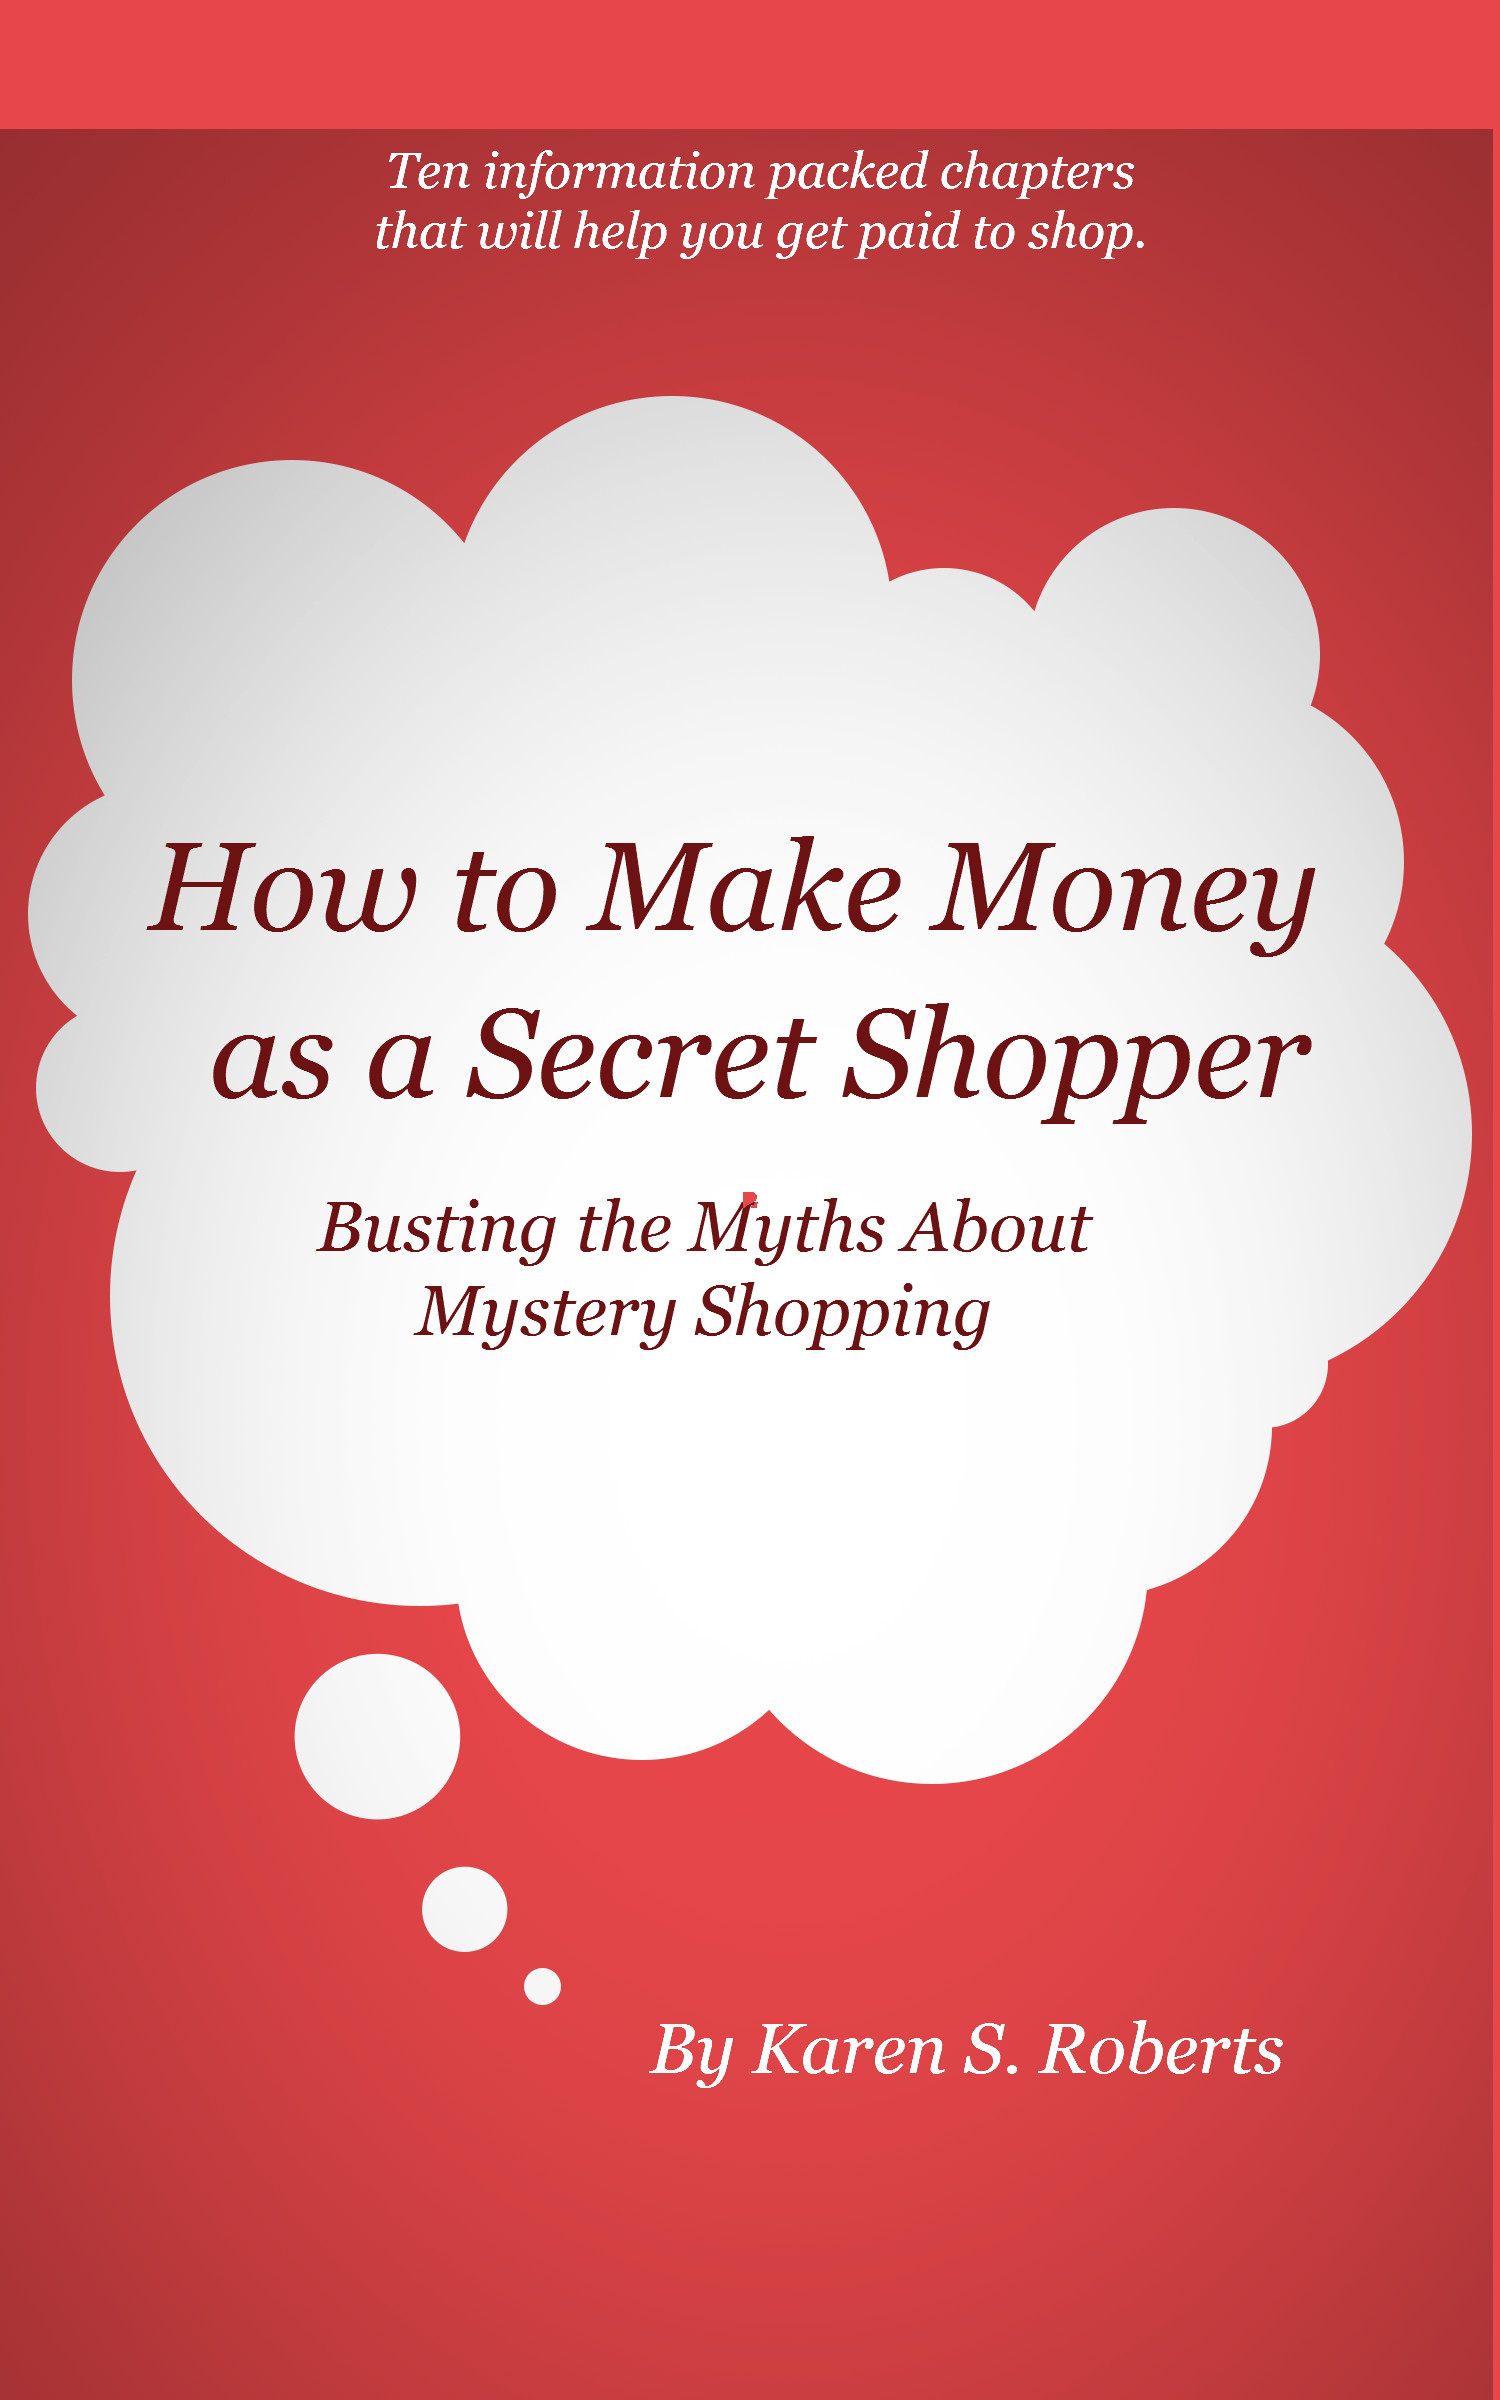 New Instructional Book On Secret Shopping Released On Kindle